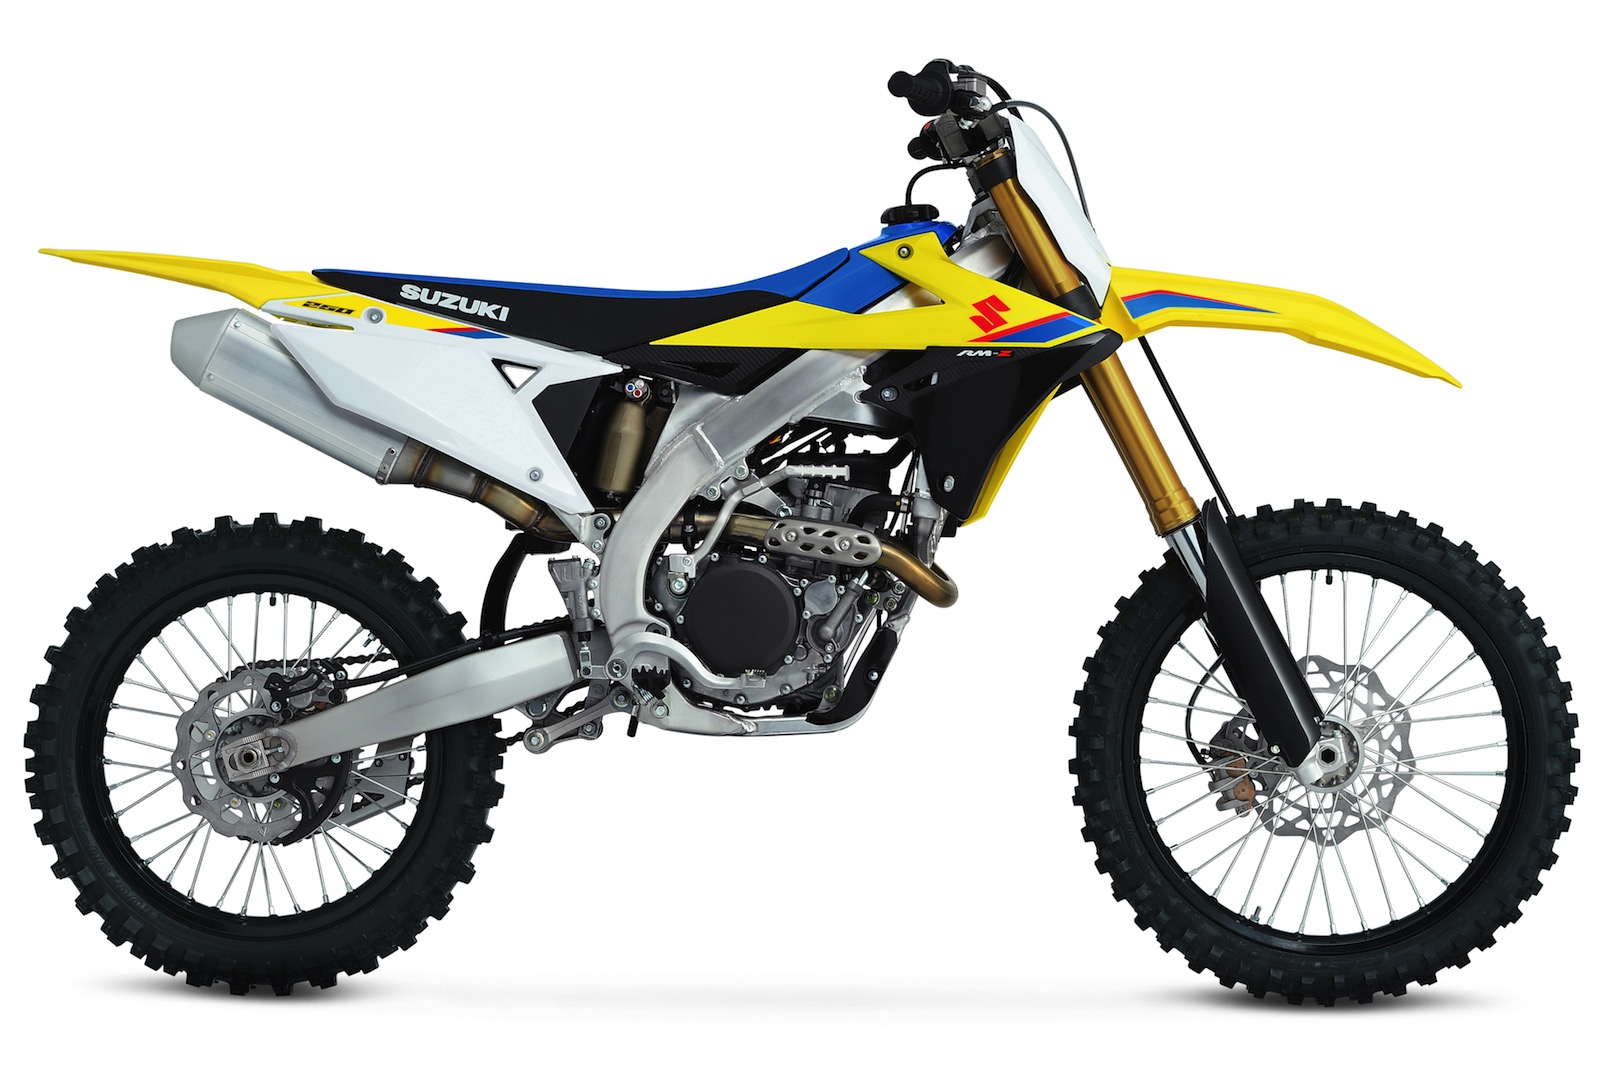 Take a look at the new and improved Suzuki RM-Z250